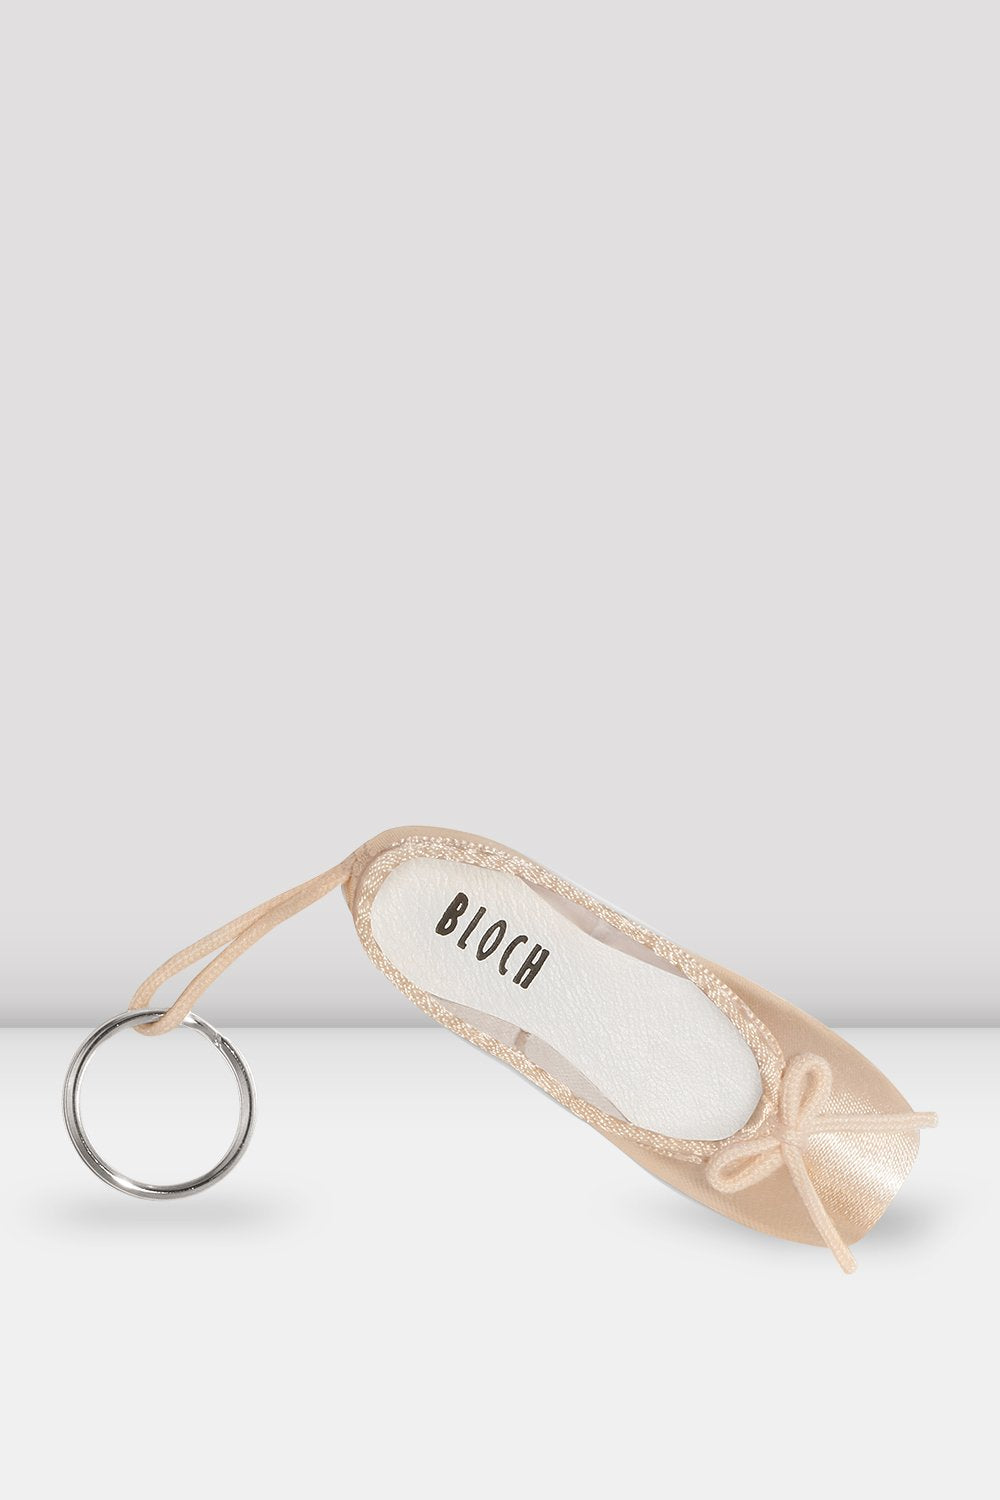 Mini Pointe Shoe Key Chain - BLOCH US